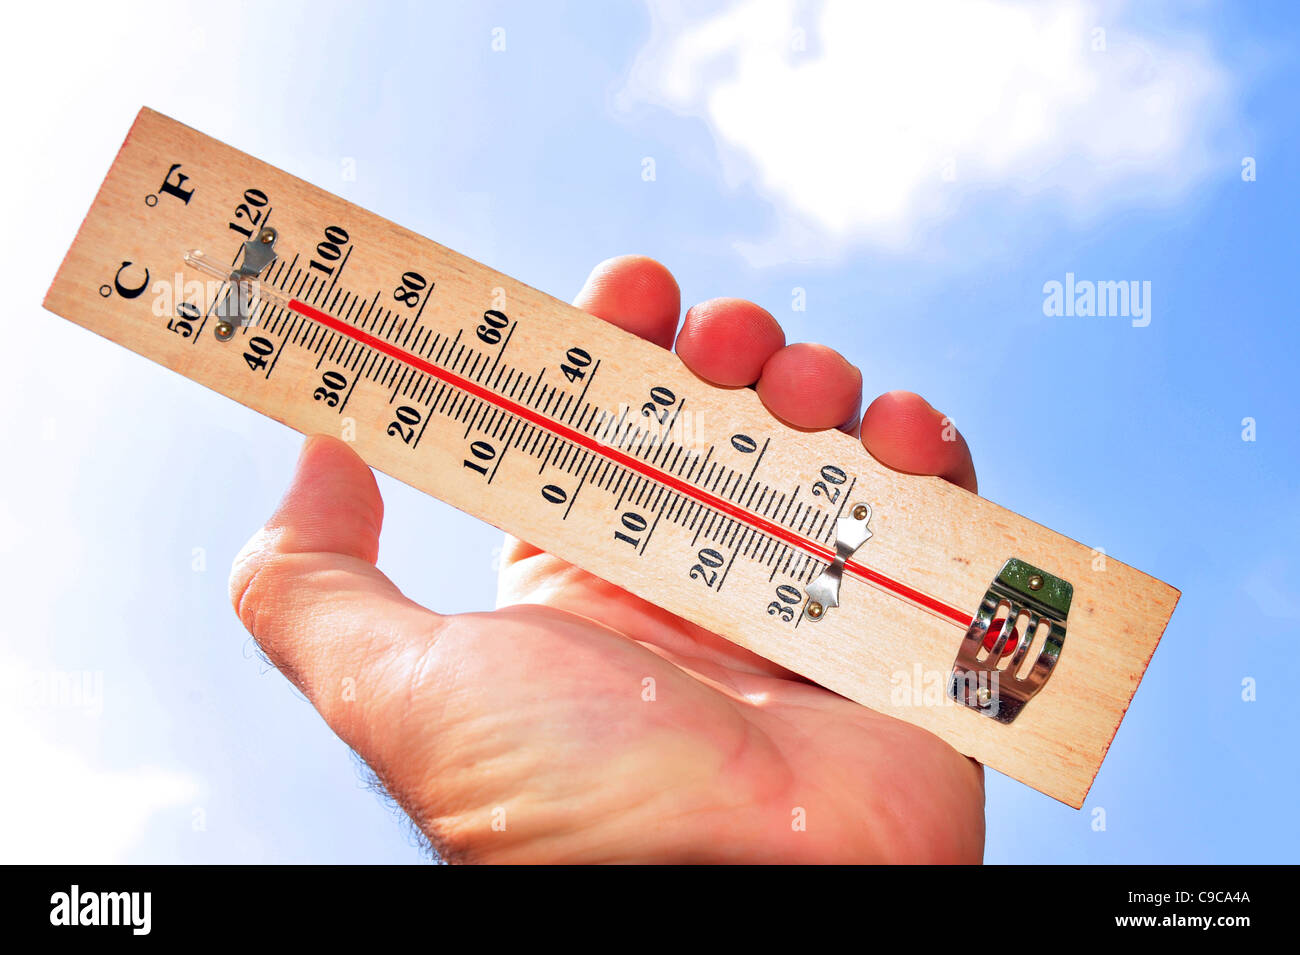 A hand and temperature scale shows 41 degrees celsius during a heat wave - Stock Image